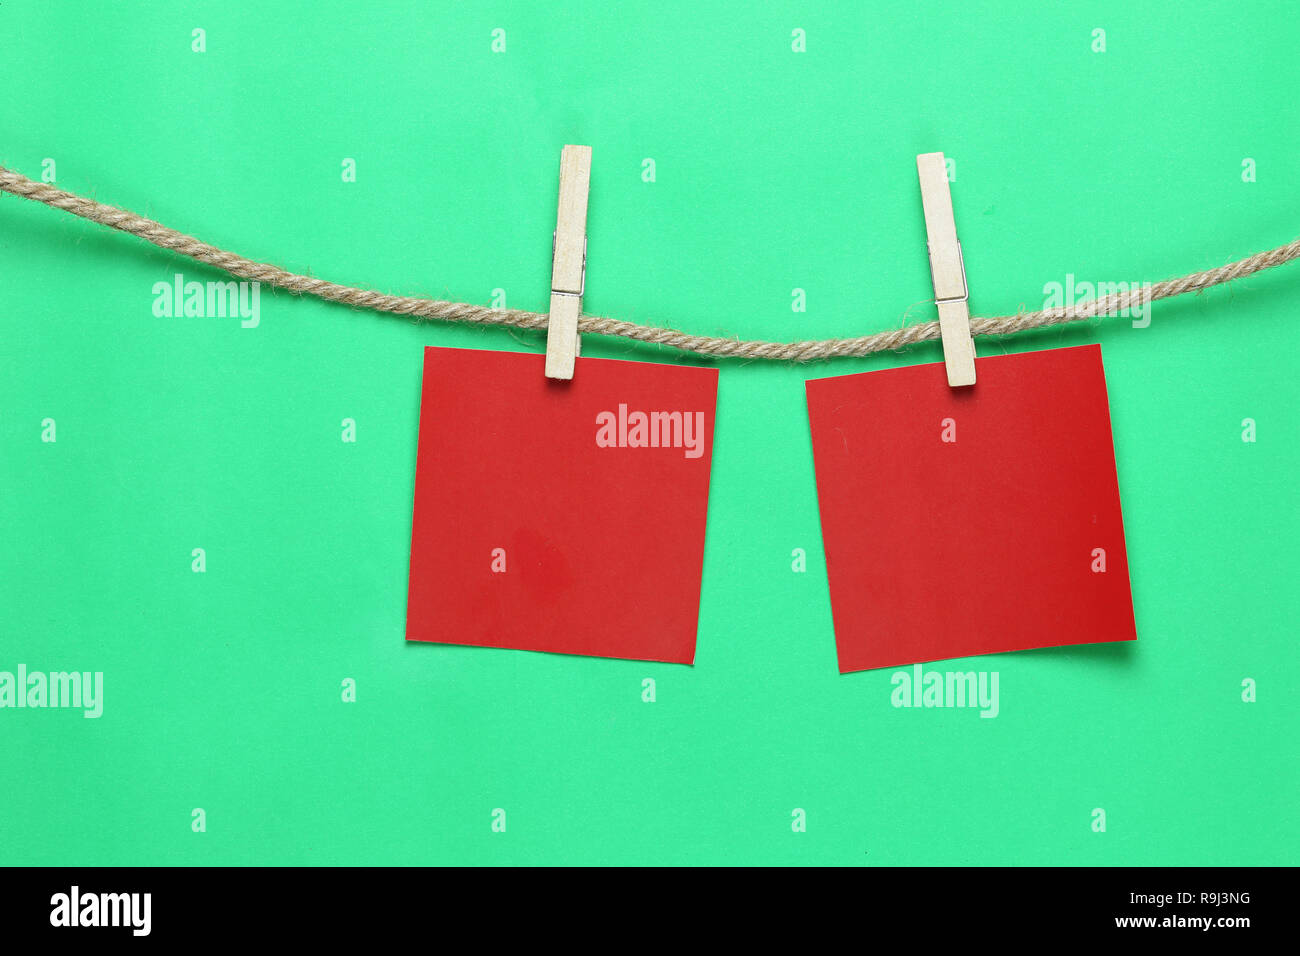 Red Paper Note Hang On Hemp Rope And Have Copy Space For Design In Your Work Concept Stock Photo Alamy